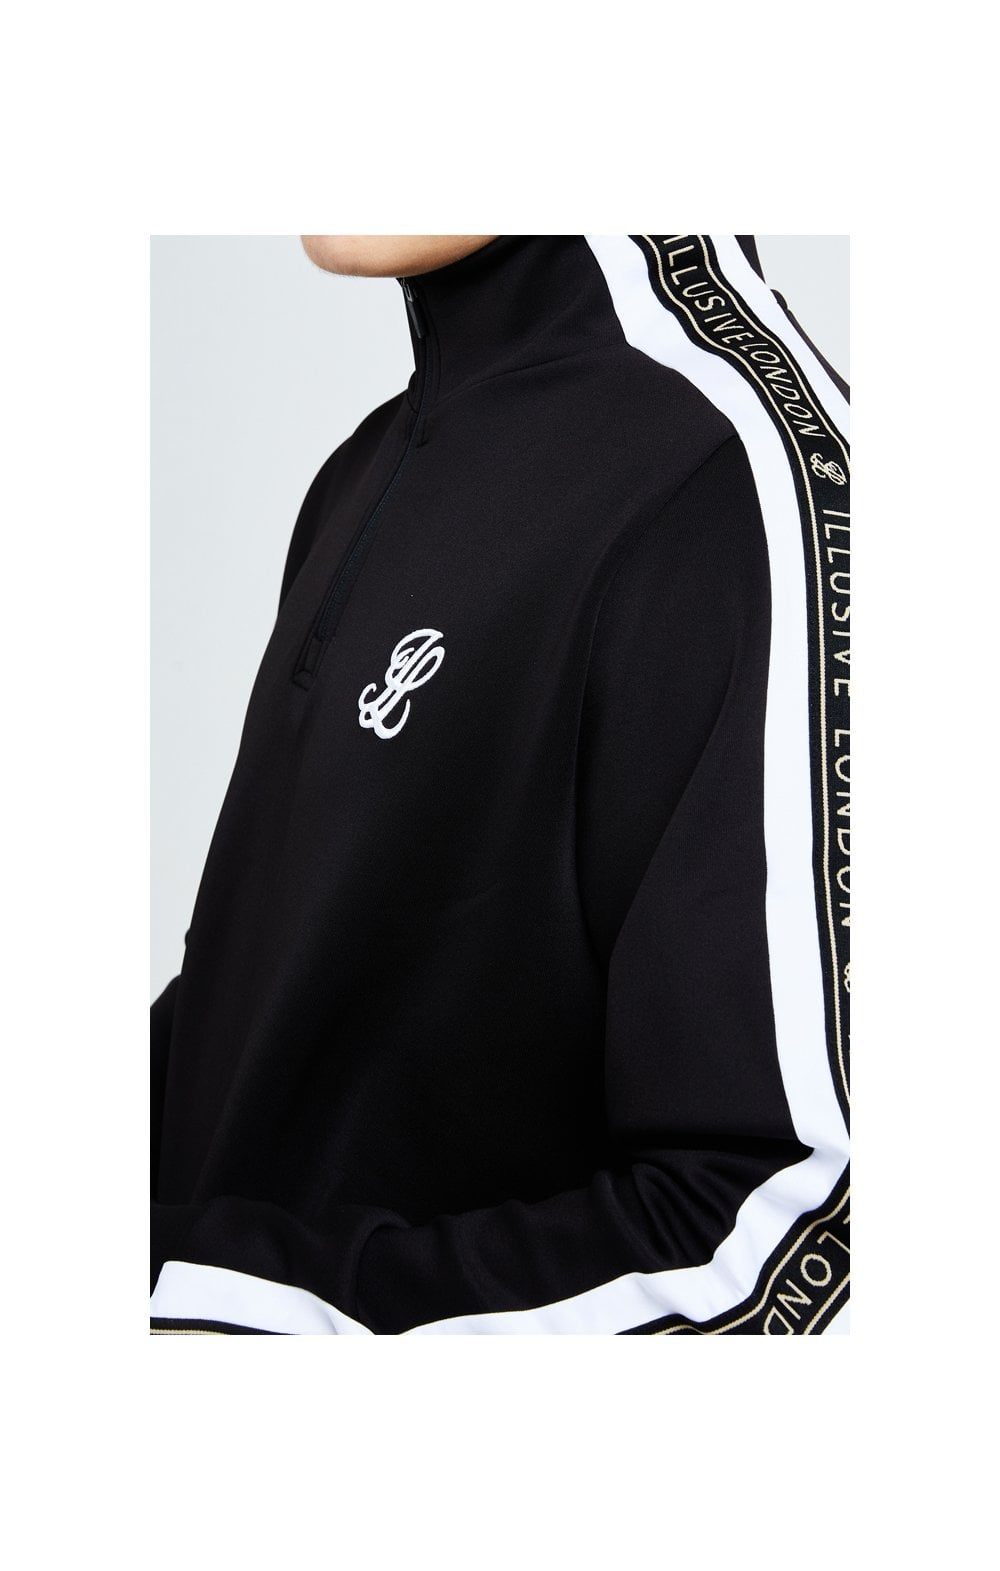 Load image into Gallery viewer, Illusive London Diverge 1/4 Zip Hoodie Black Gold & White (2)